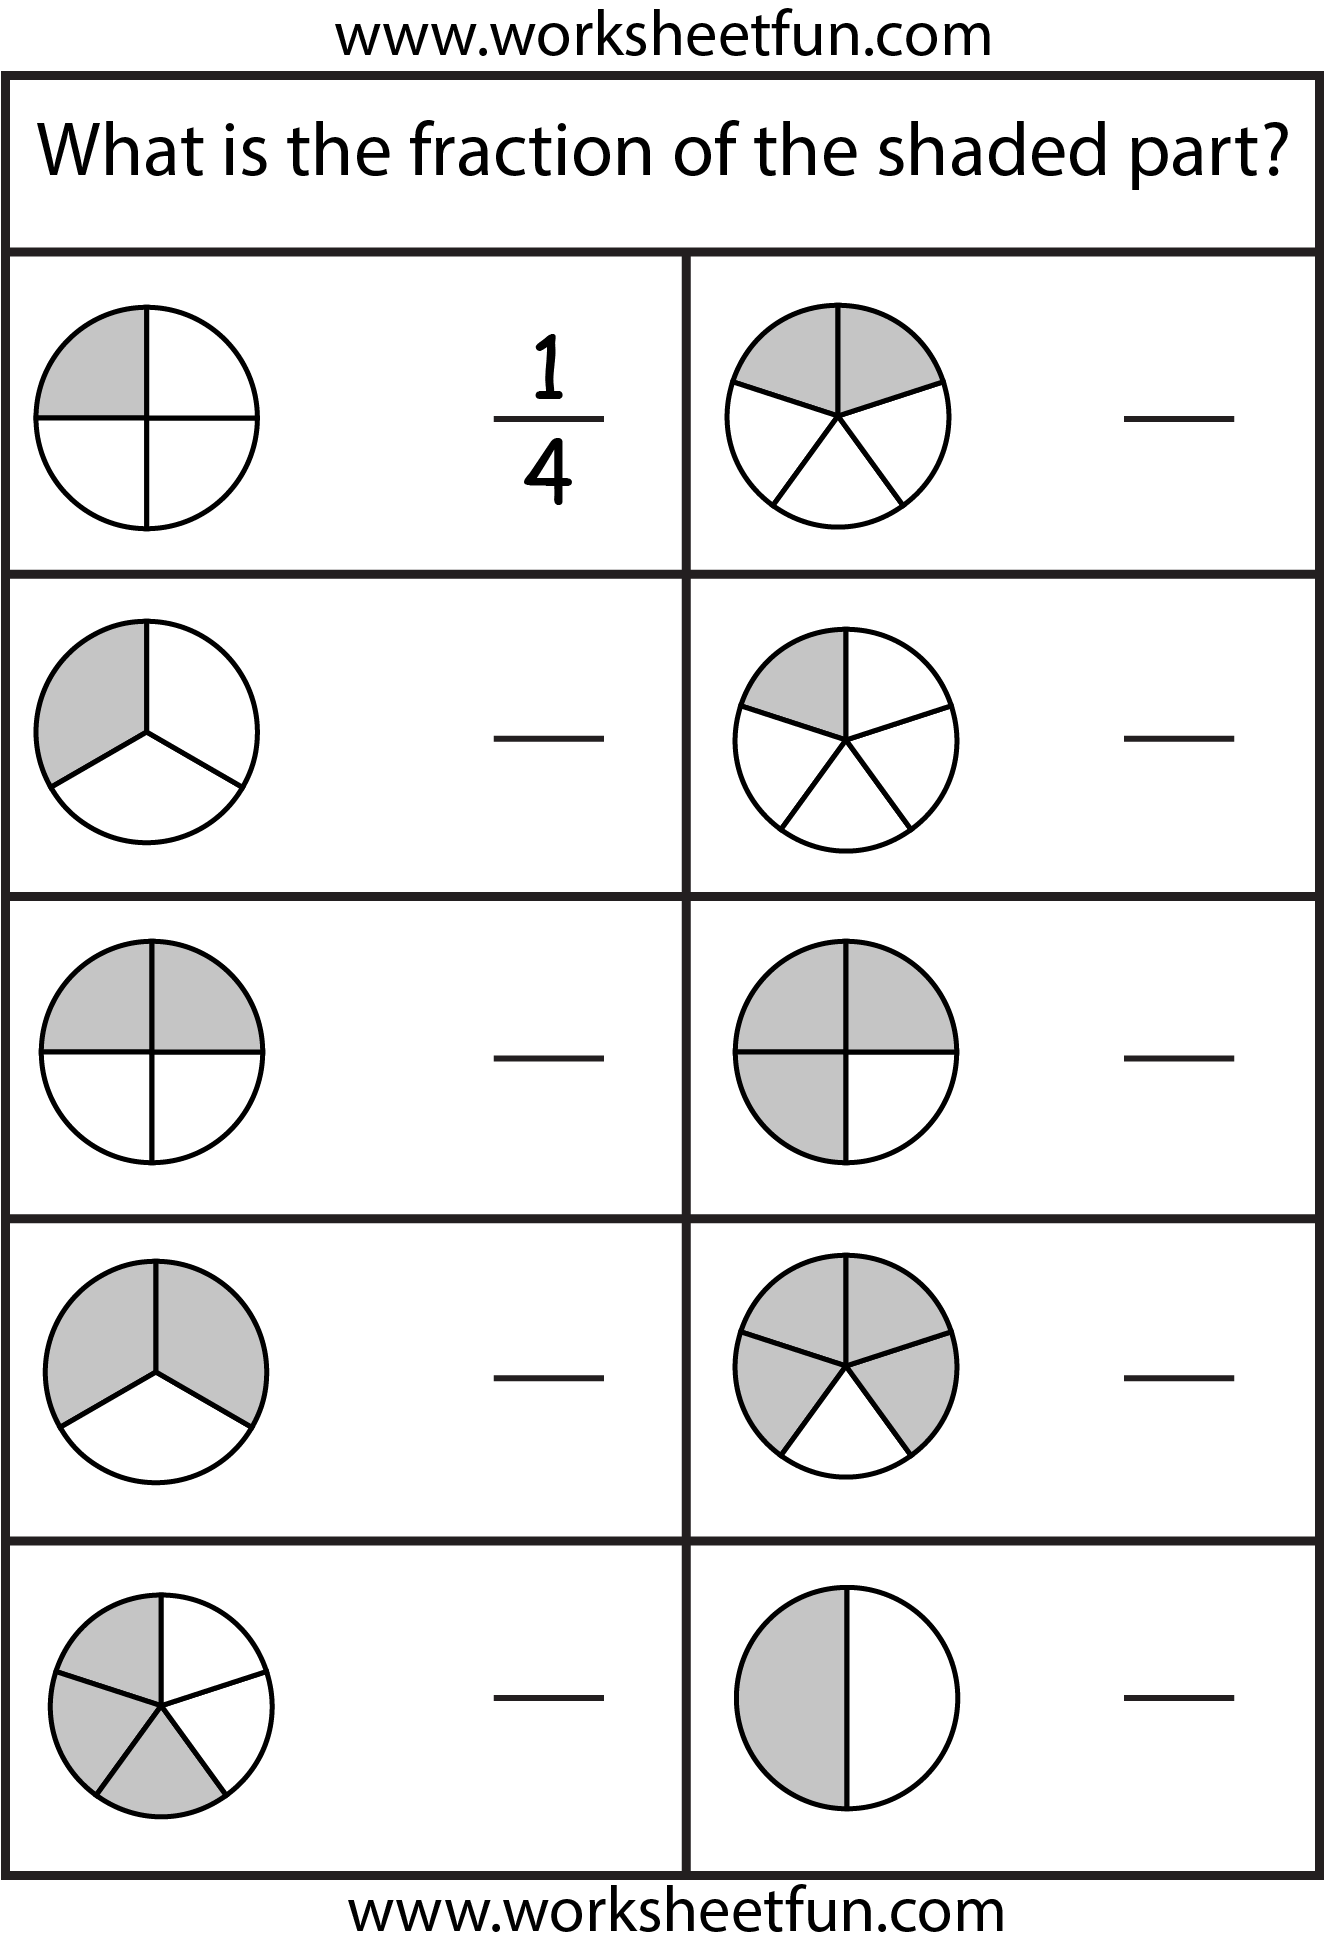 Fraction worksheets for 2nd grade printable